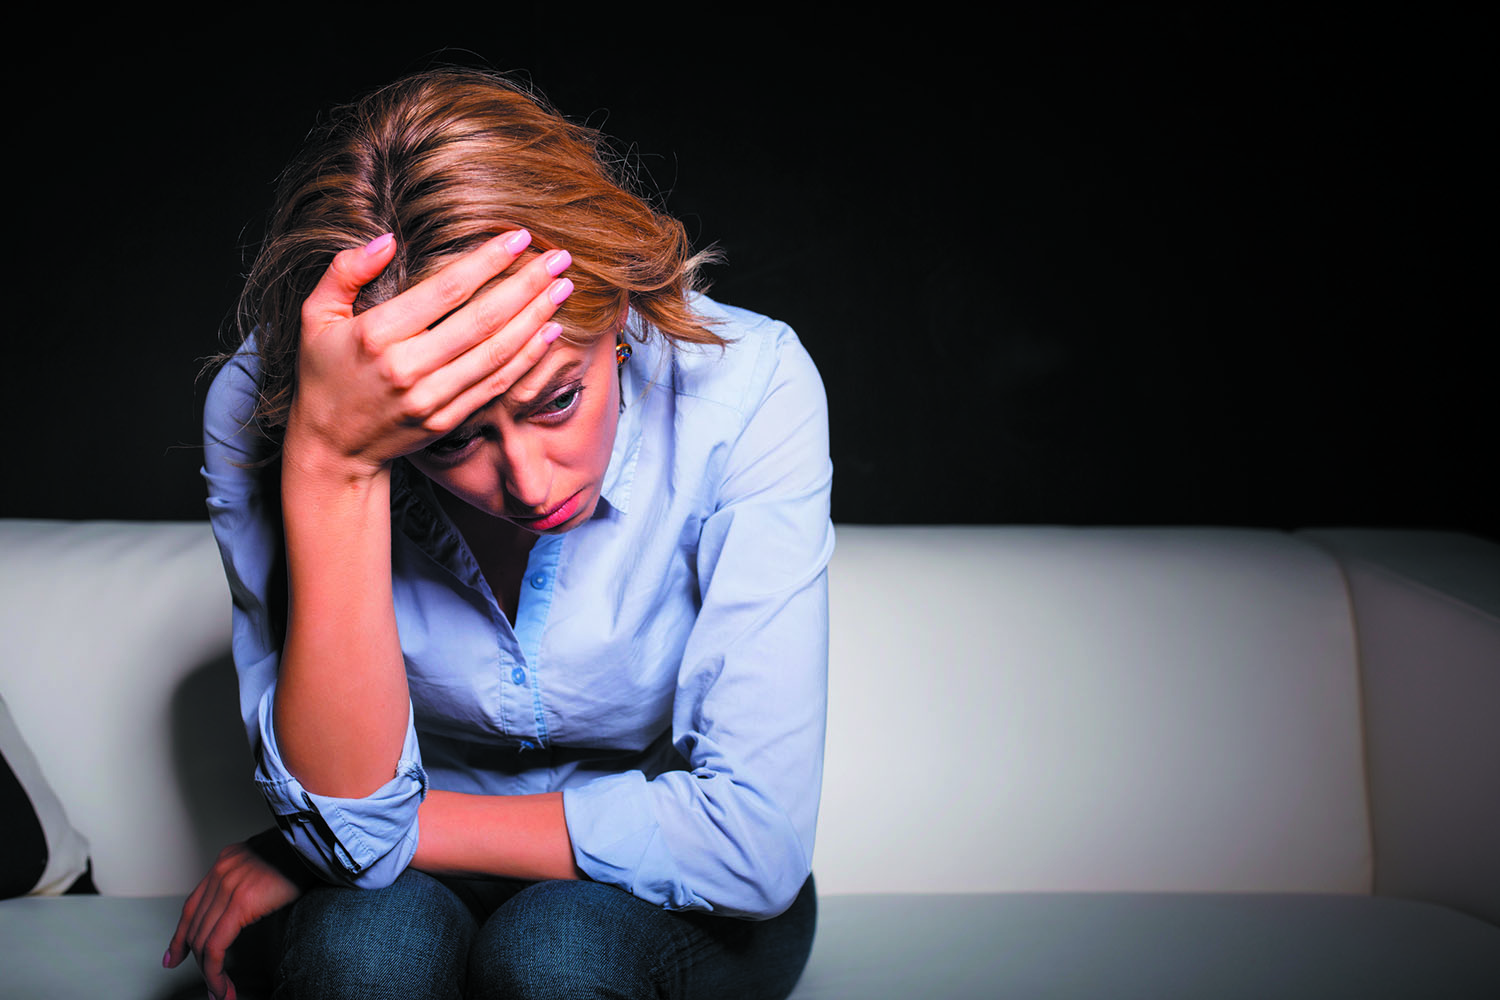 How-to-Control-Anxiety-Medicines-Therapies-and-Others